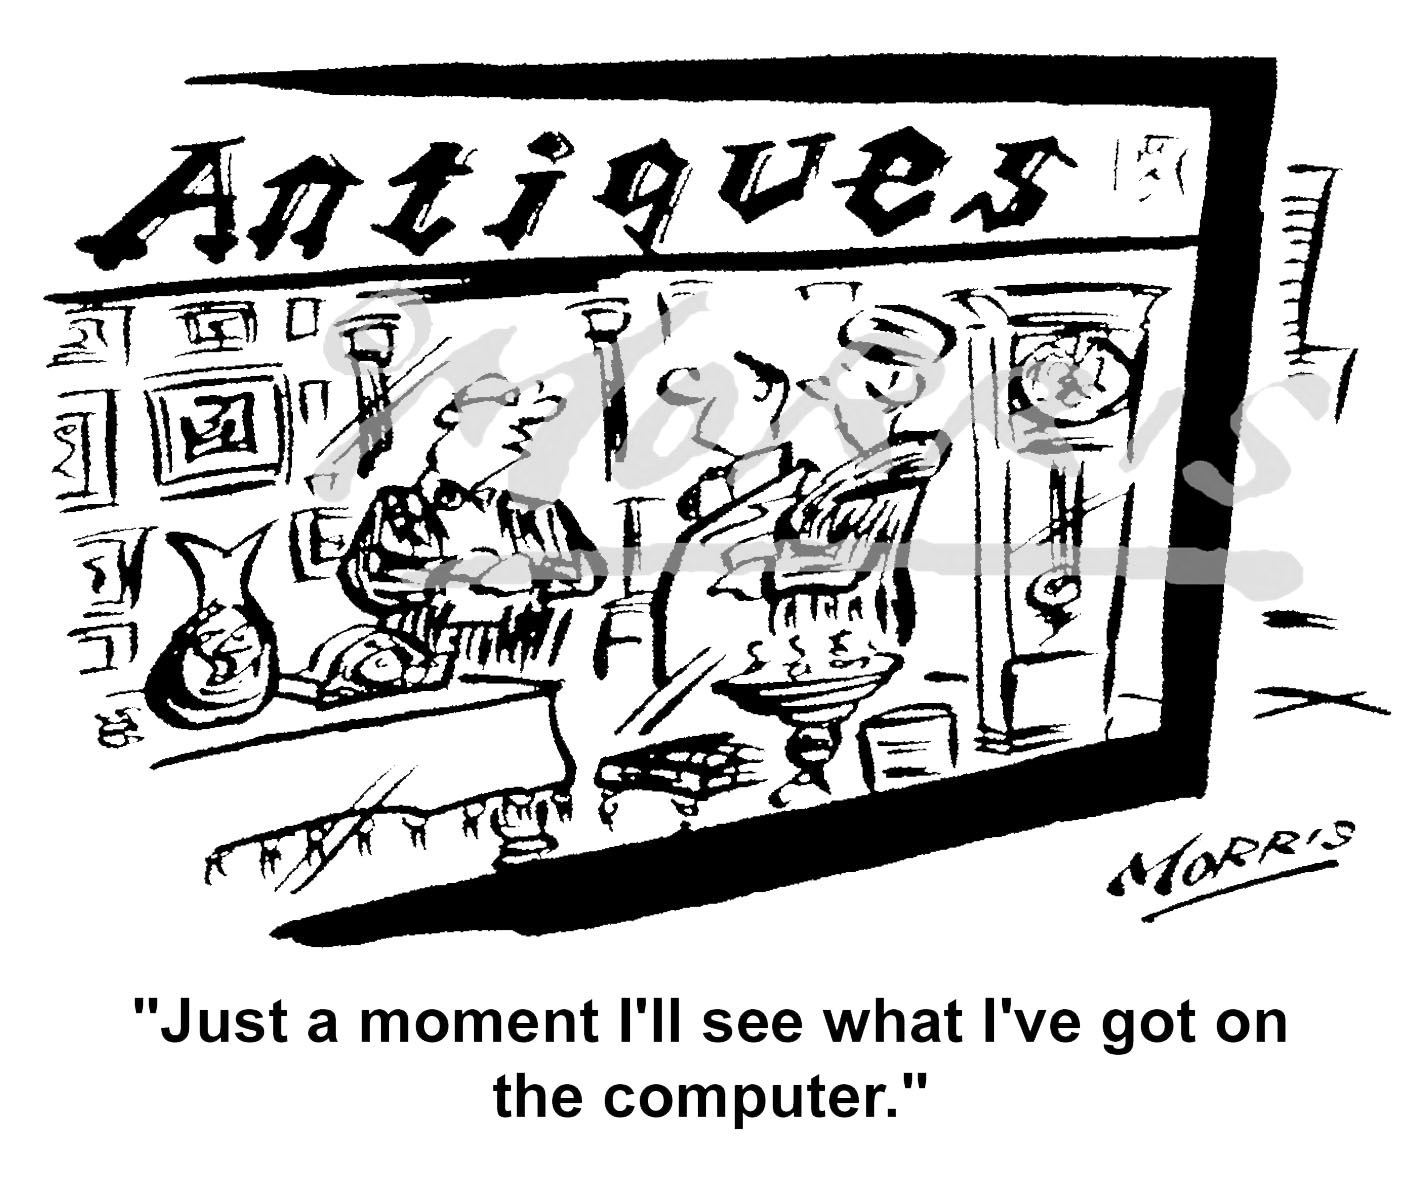 Antiques shop computer cartoon Ref: 5093bw